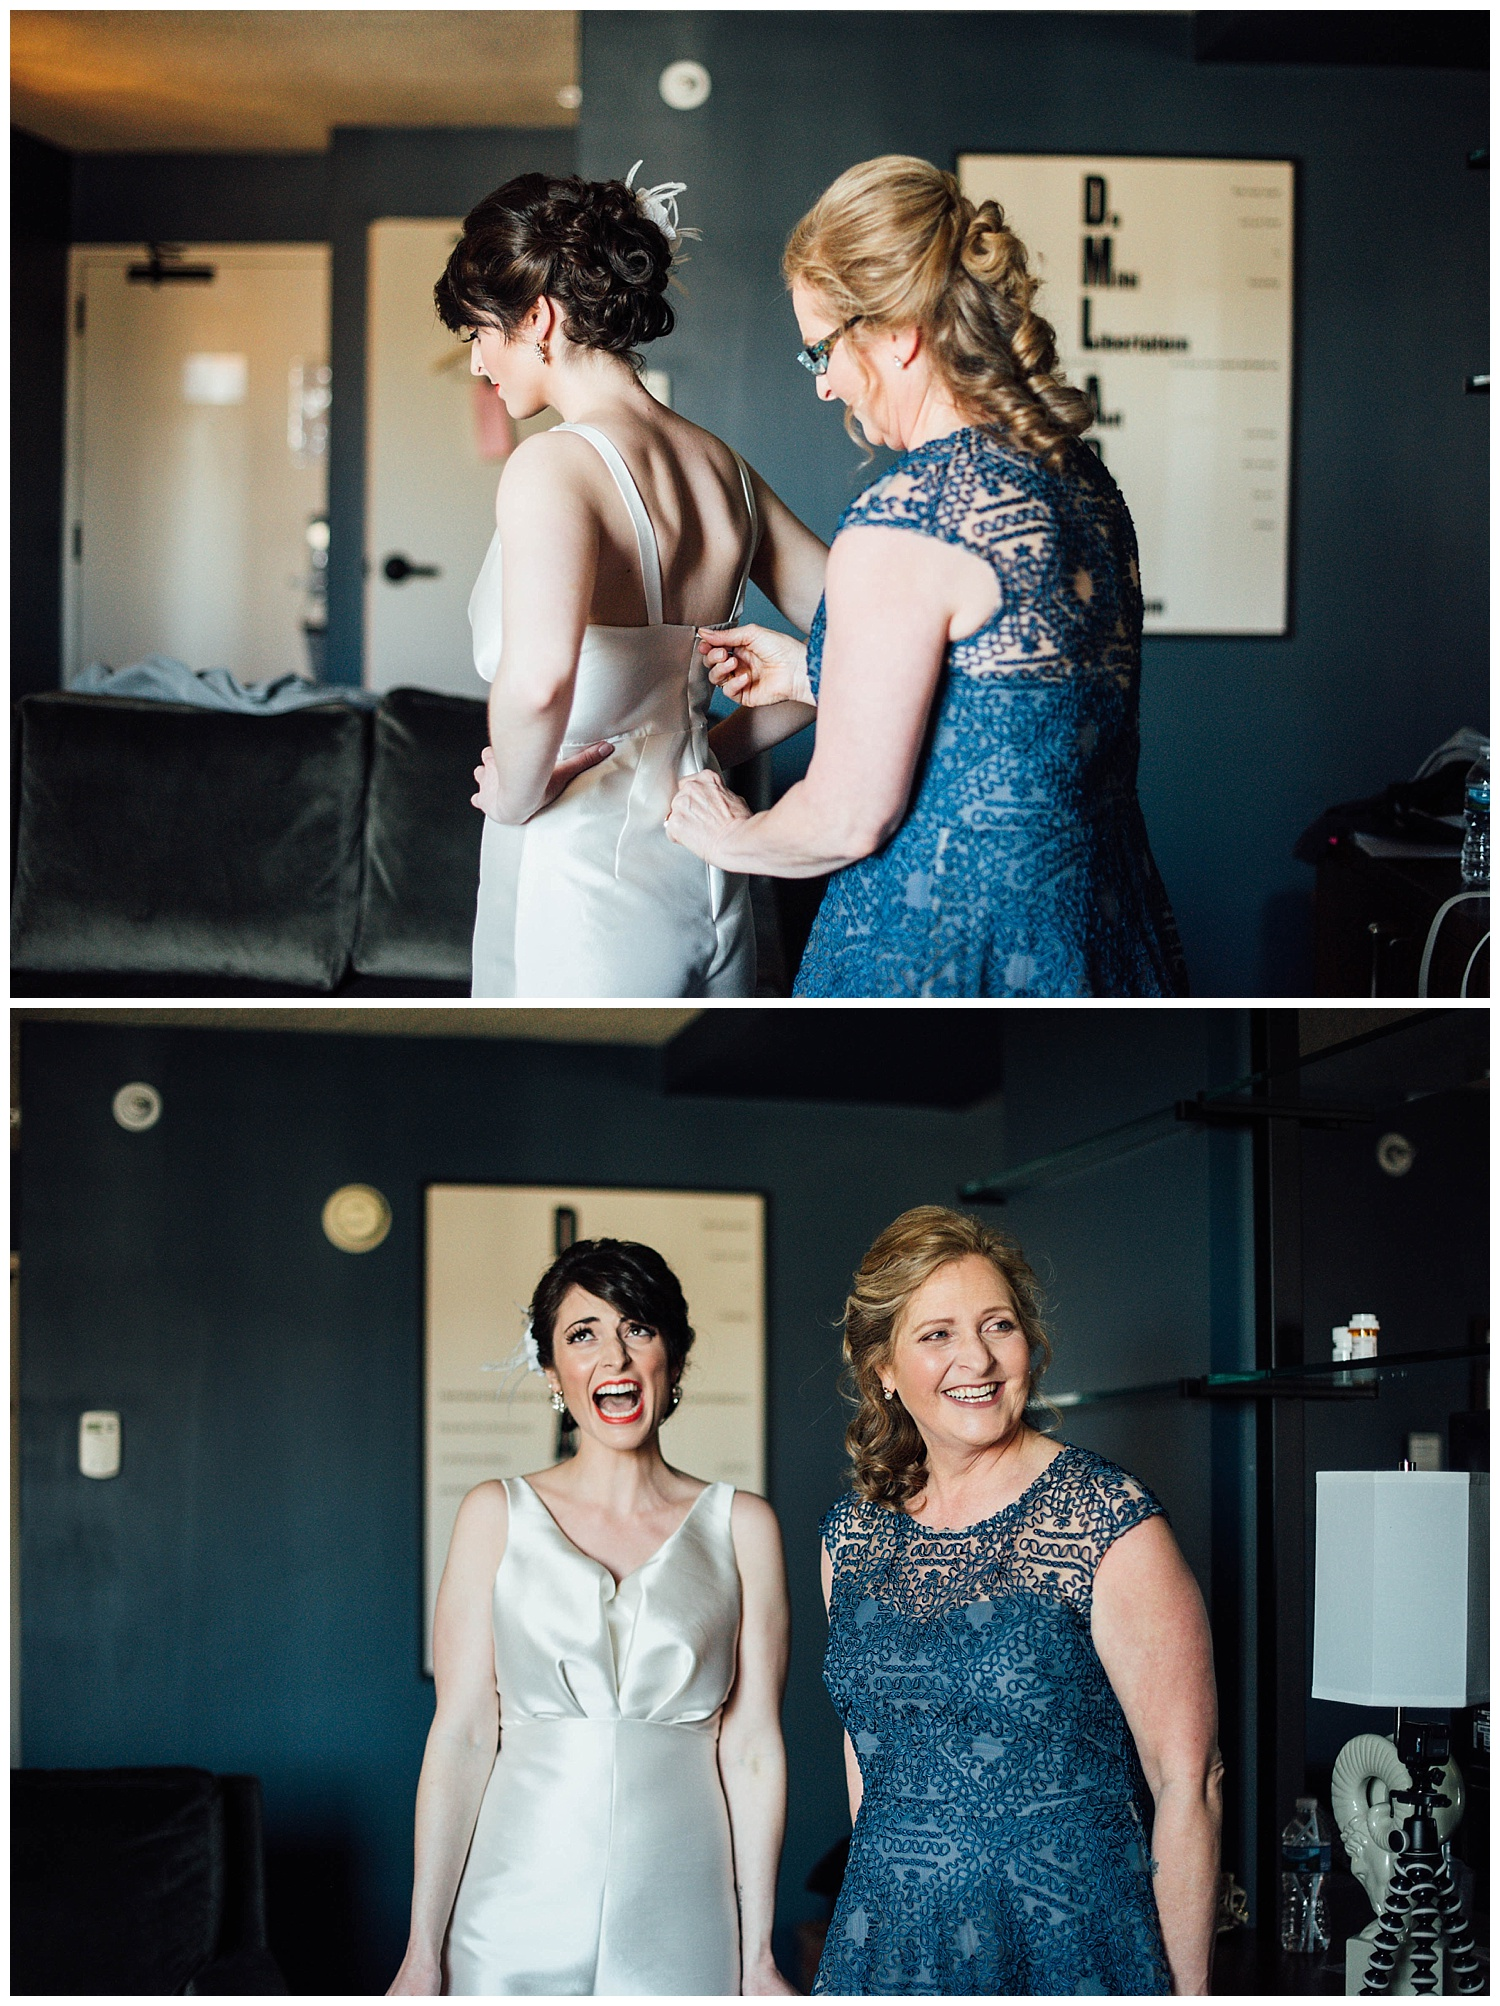 Graduate-Boutique-Hotel-Richmond-Bride-Reveal-GettingReady4.jpg